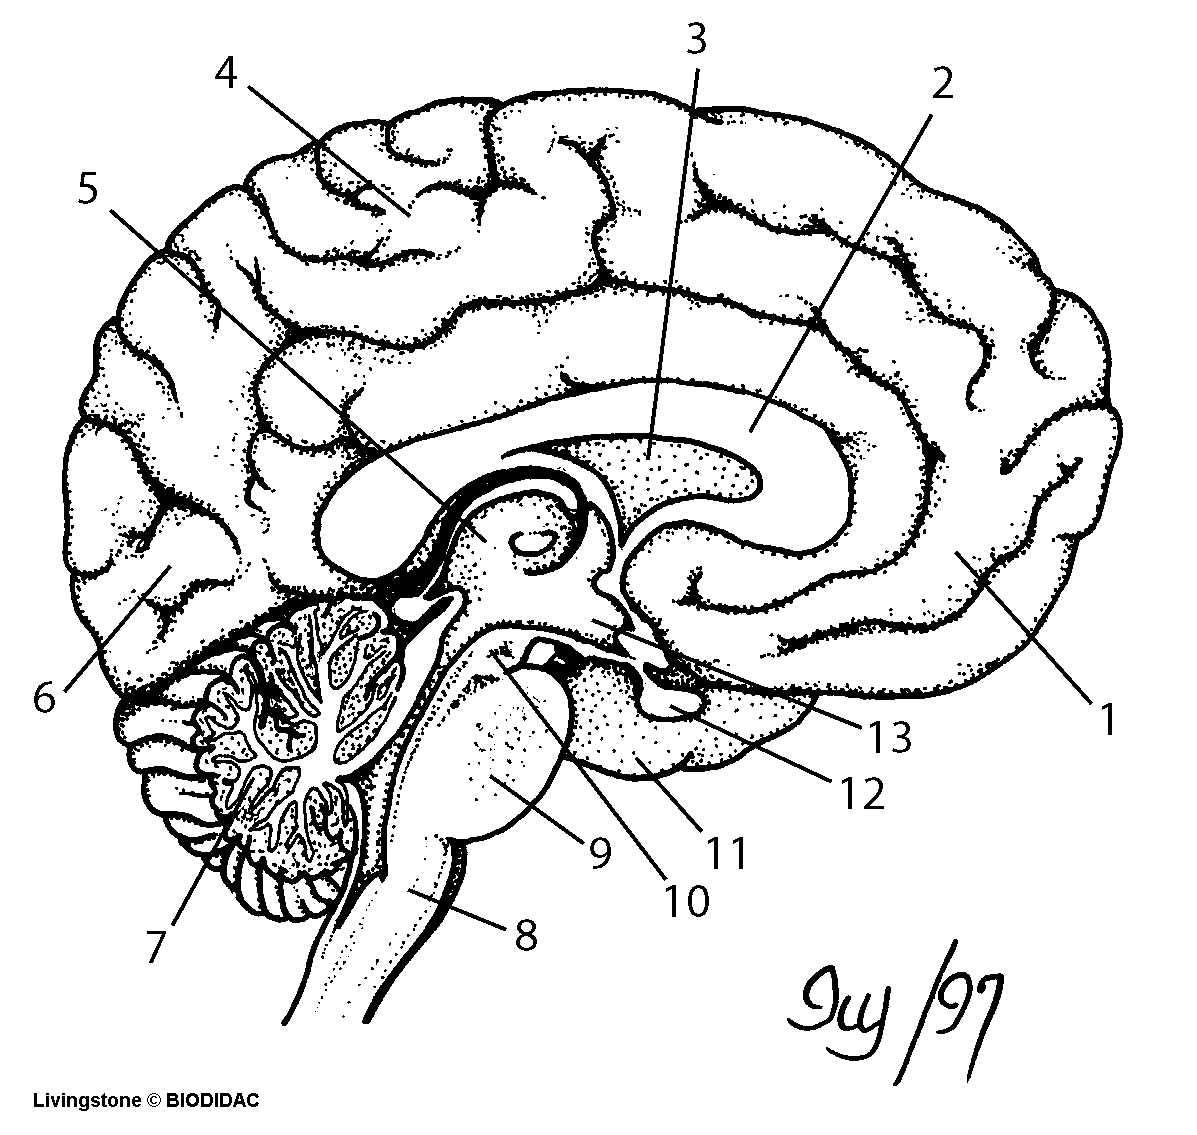 It is a picture of Agile brain anatomy coloring pages